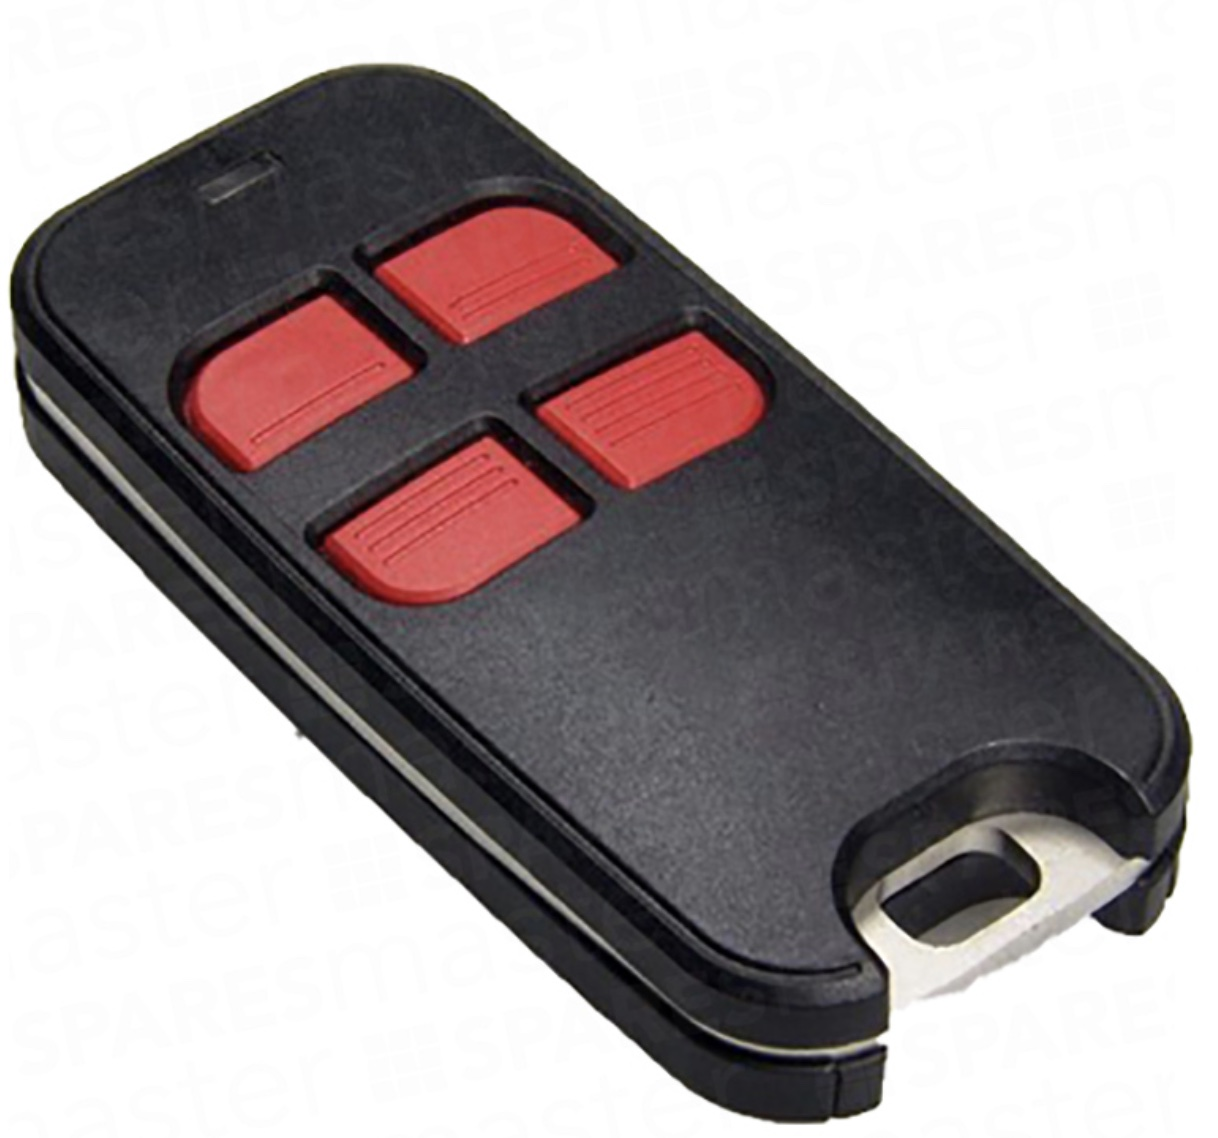 Seip Mini 433MHz Replacement Keyfob Handset to suit C75 Operator